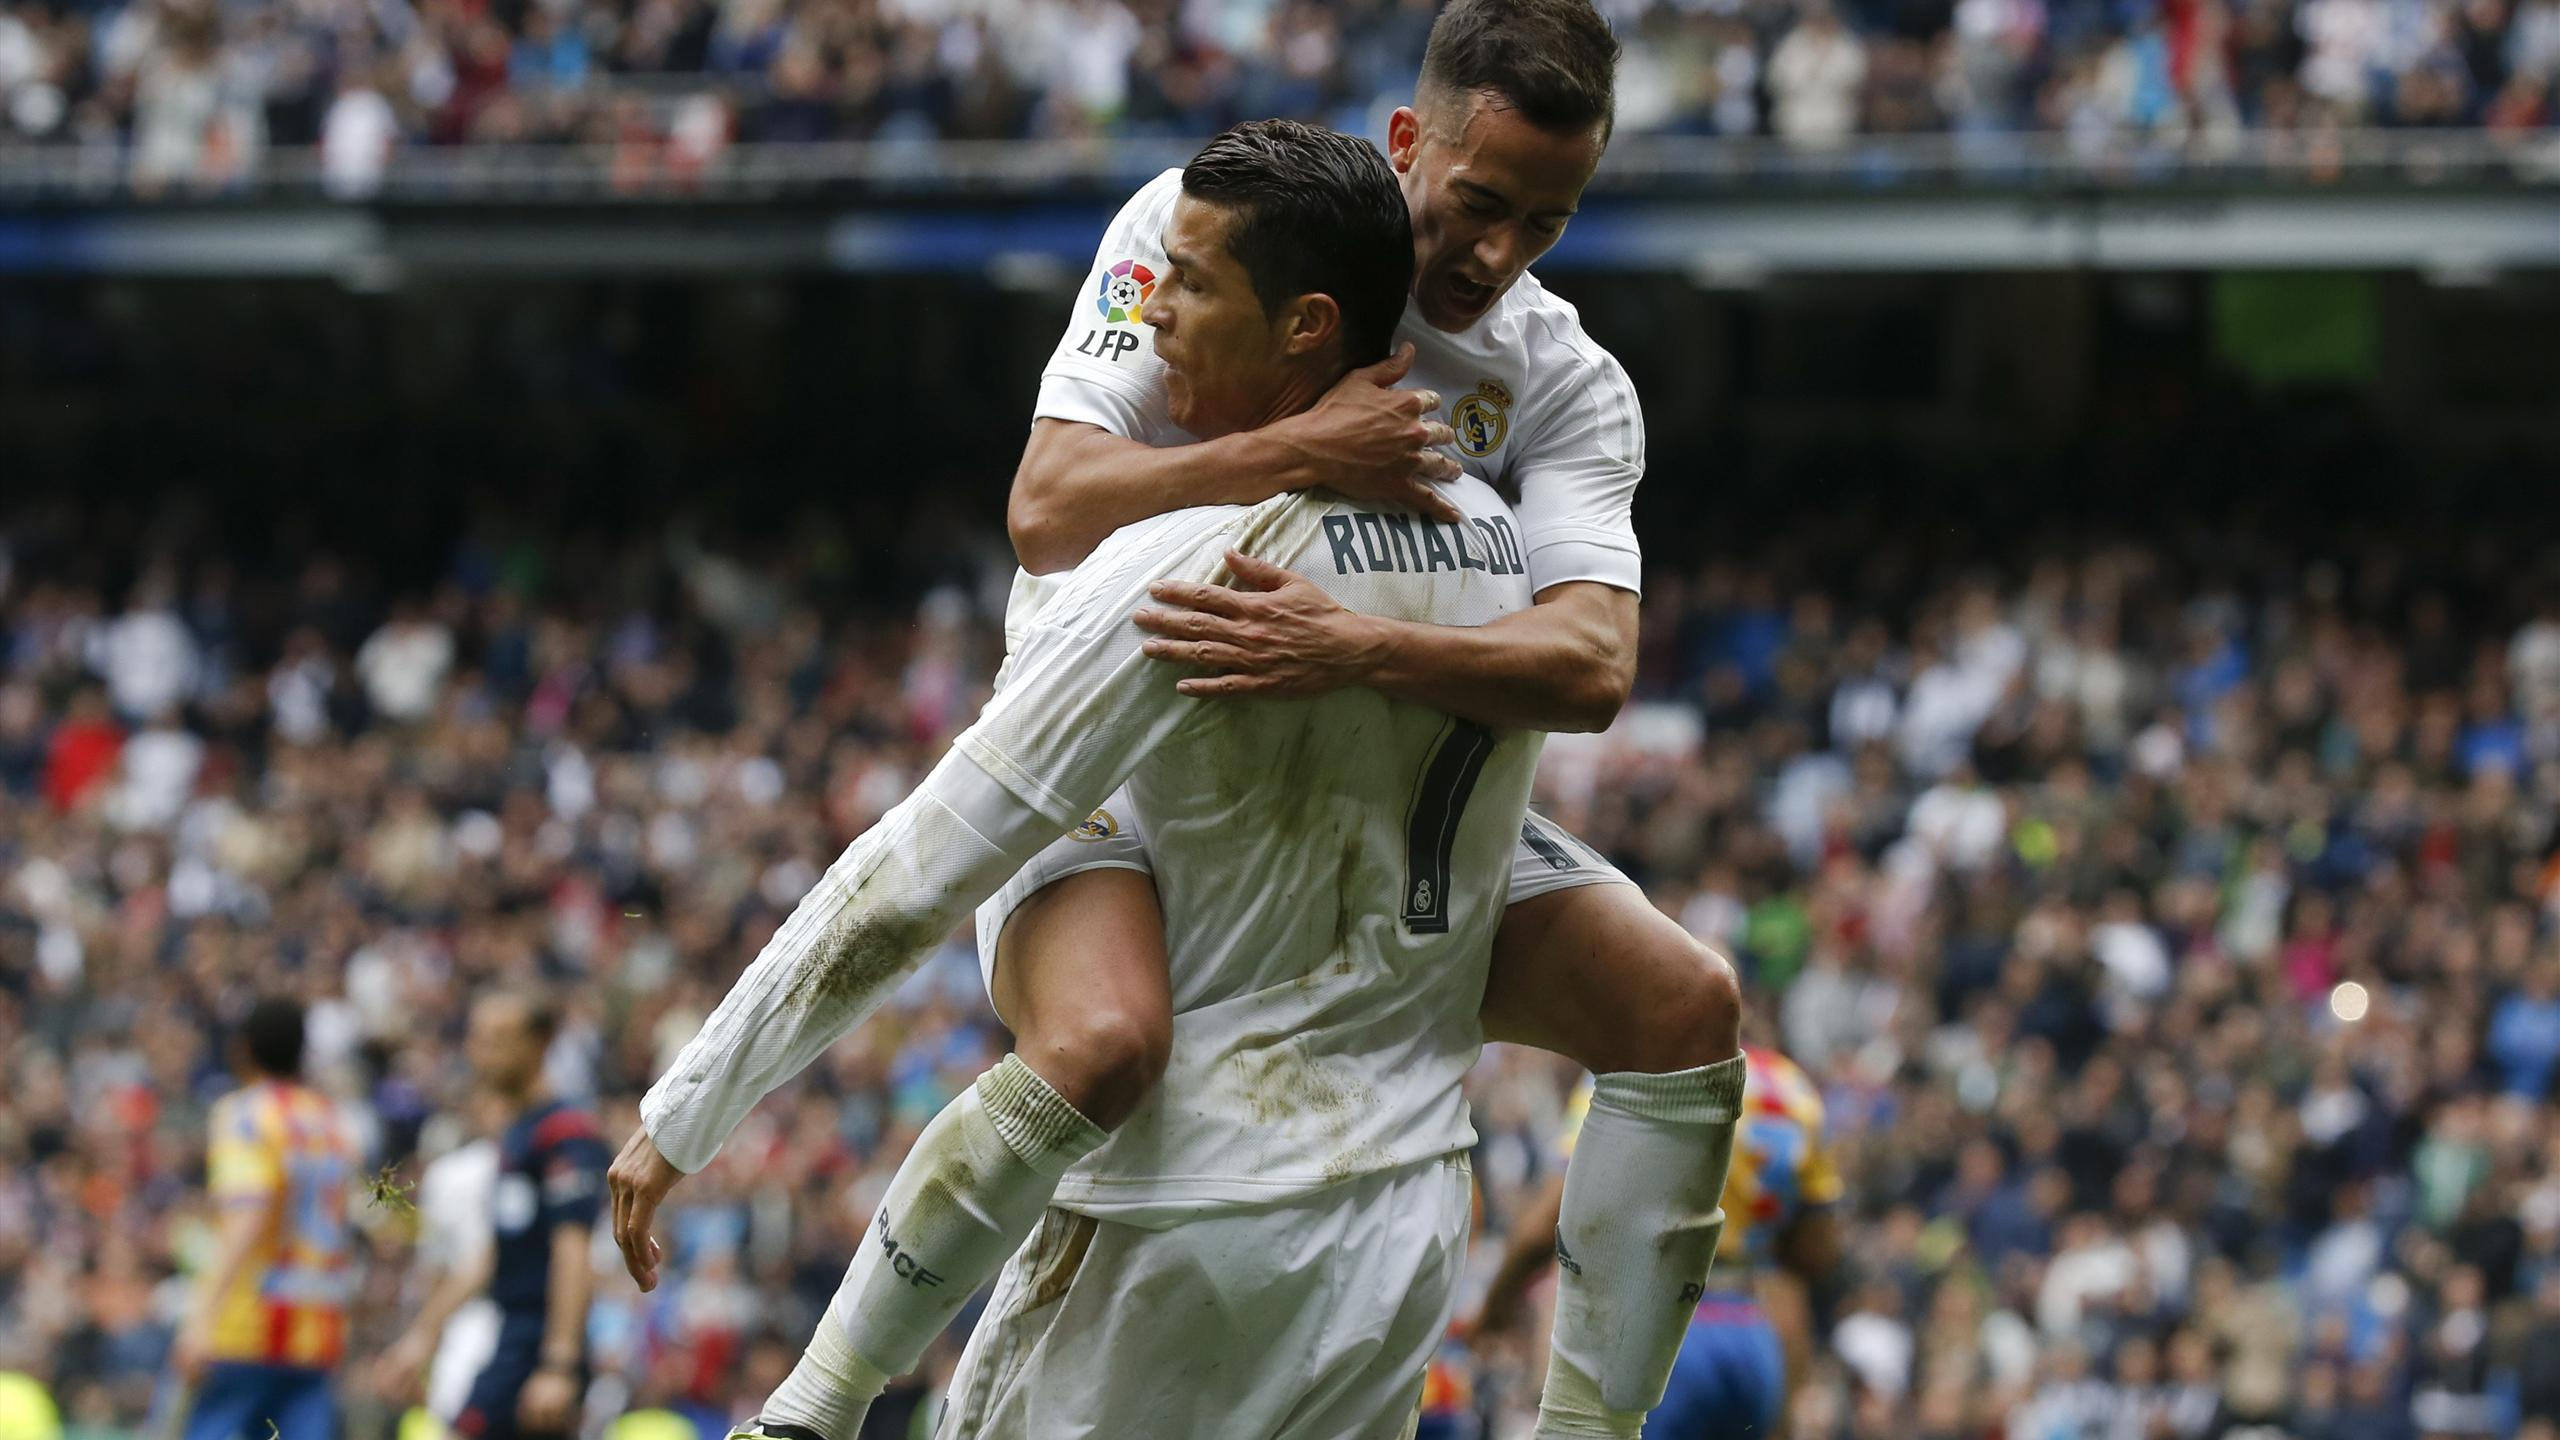 Real Madrid's Cristiano Ronaldo celebrates with team mate Lucas Vazquez after scoring a goal.